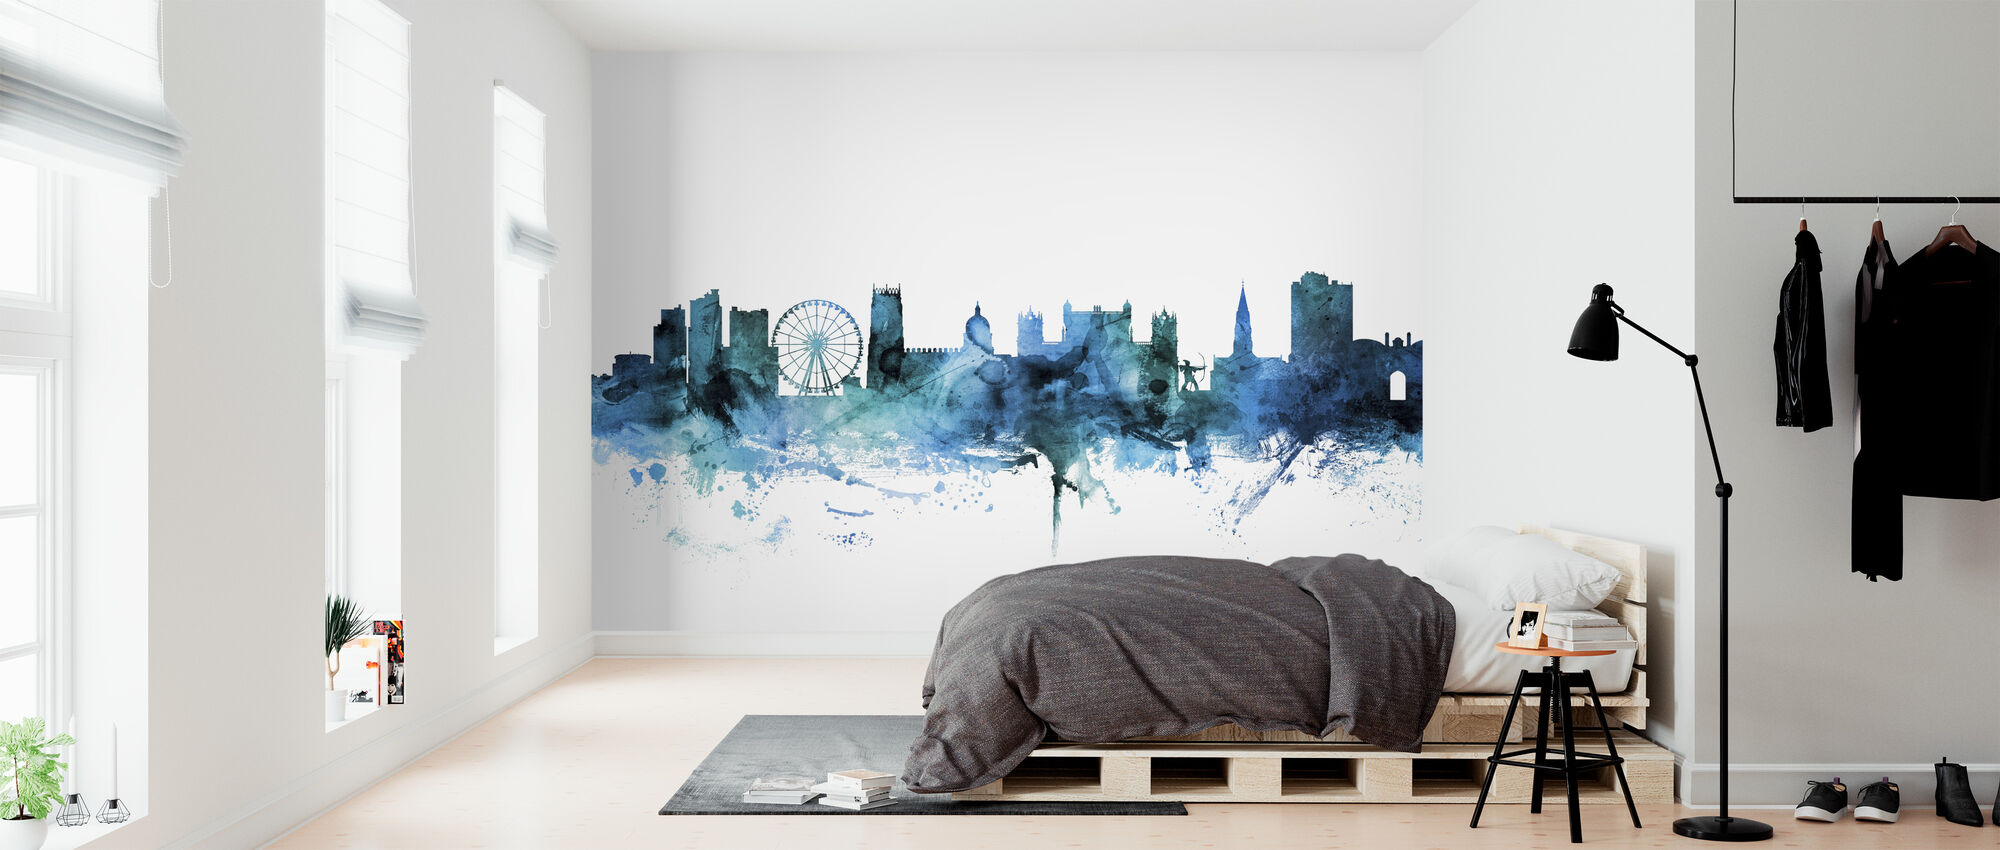 Nottingham England Skyline - Wallpaper - Bedroom